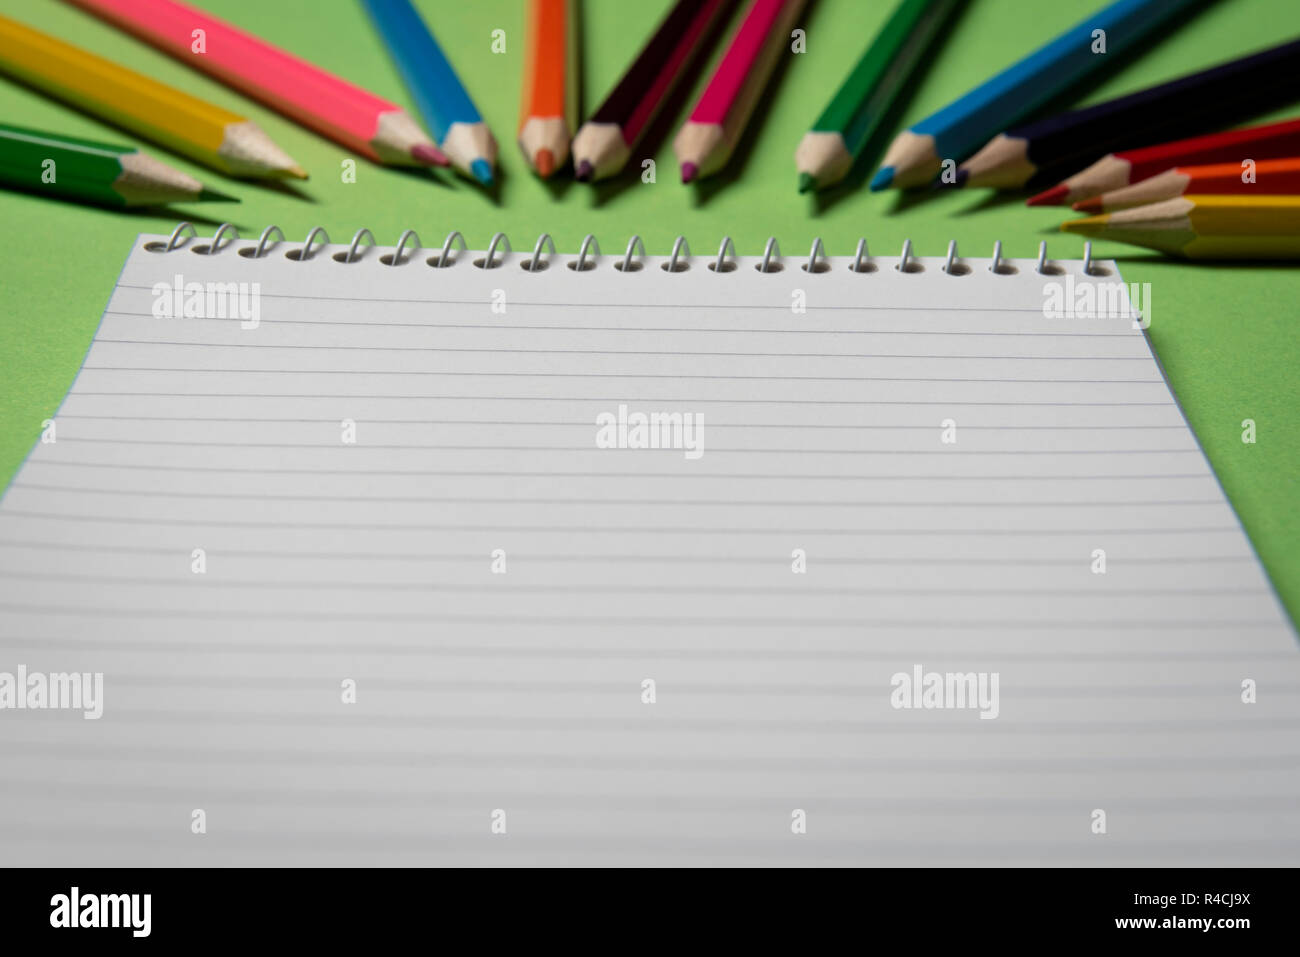 Spiral Notebook Blank Page On A Green Table With Many Colored Wooden